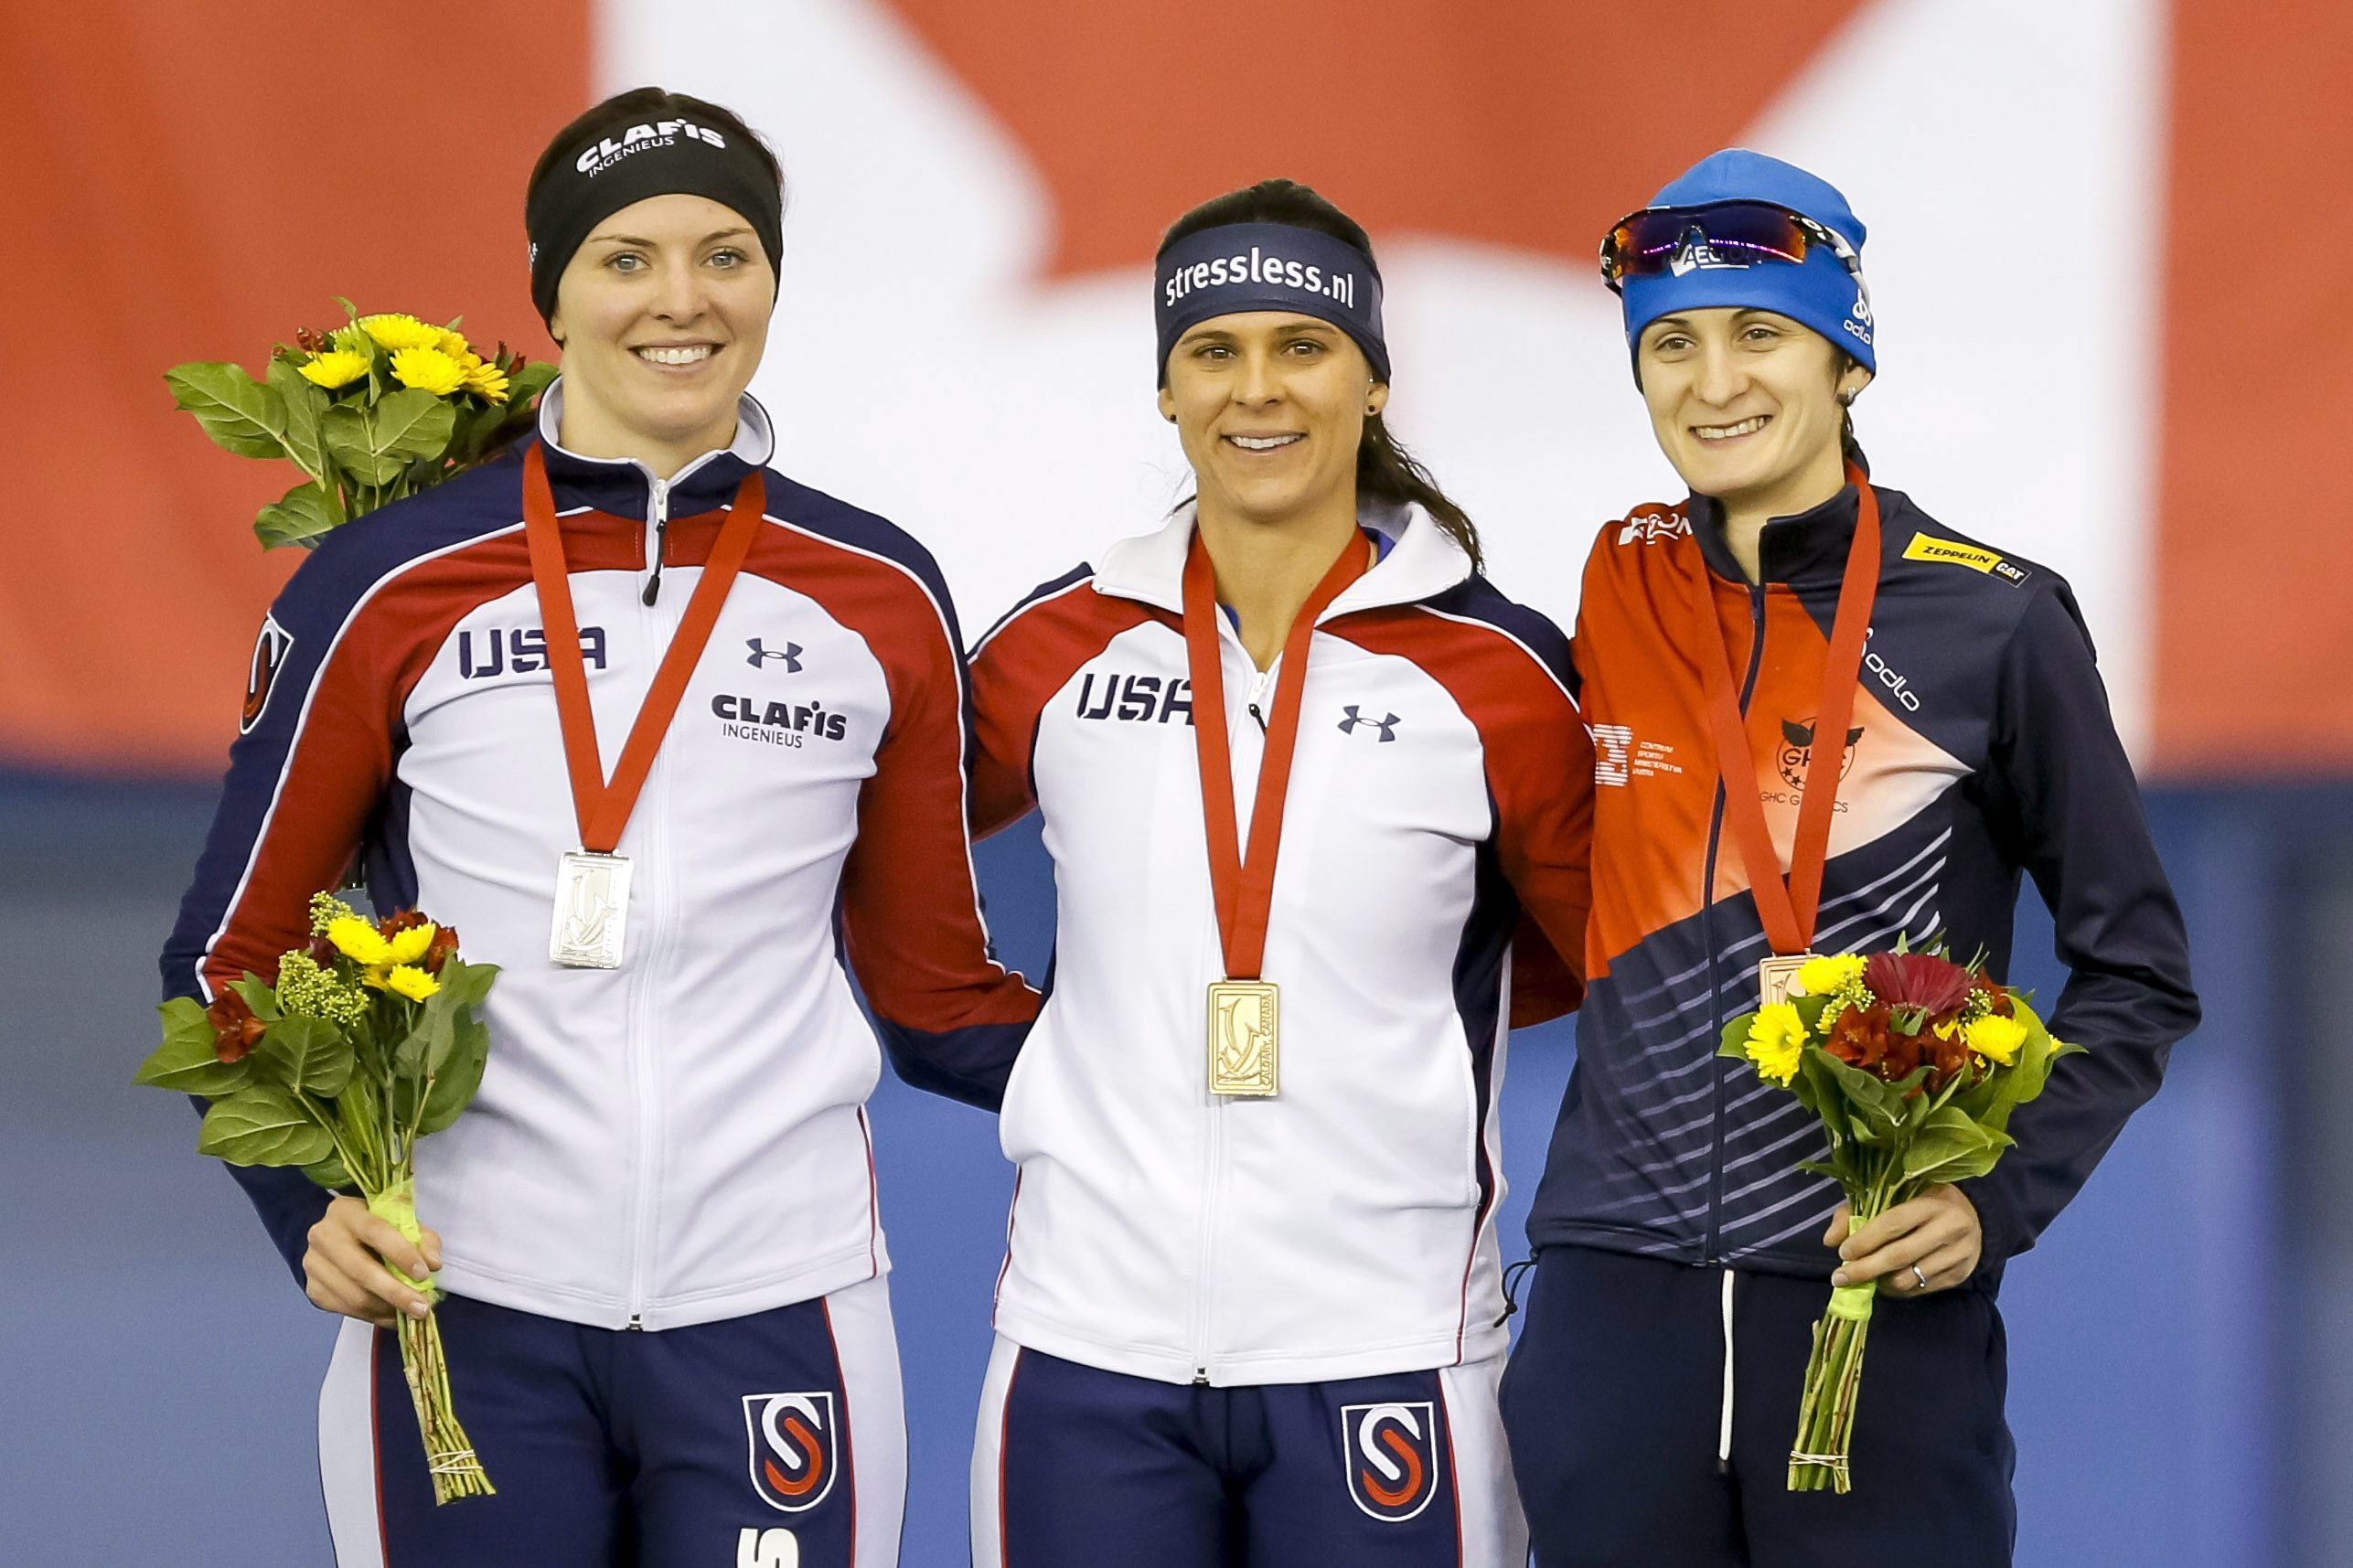 Second-place Heather Bergsman. left; winner Brittany Bowe, both of the United States; and third-place Martina Sablikova, of the Czech Republic, share the podium after the women's 1,500 meters at the World Cup speedskating event in Calgary, Alberta, Sunday, Nov. 15, 2015. (Lyle Aspinall/The Canadian Press via AP)